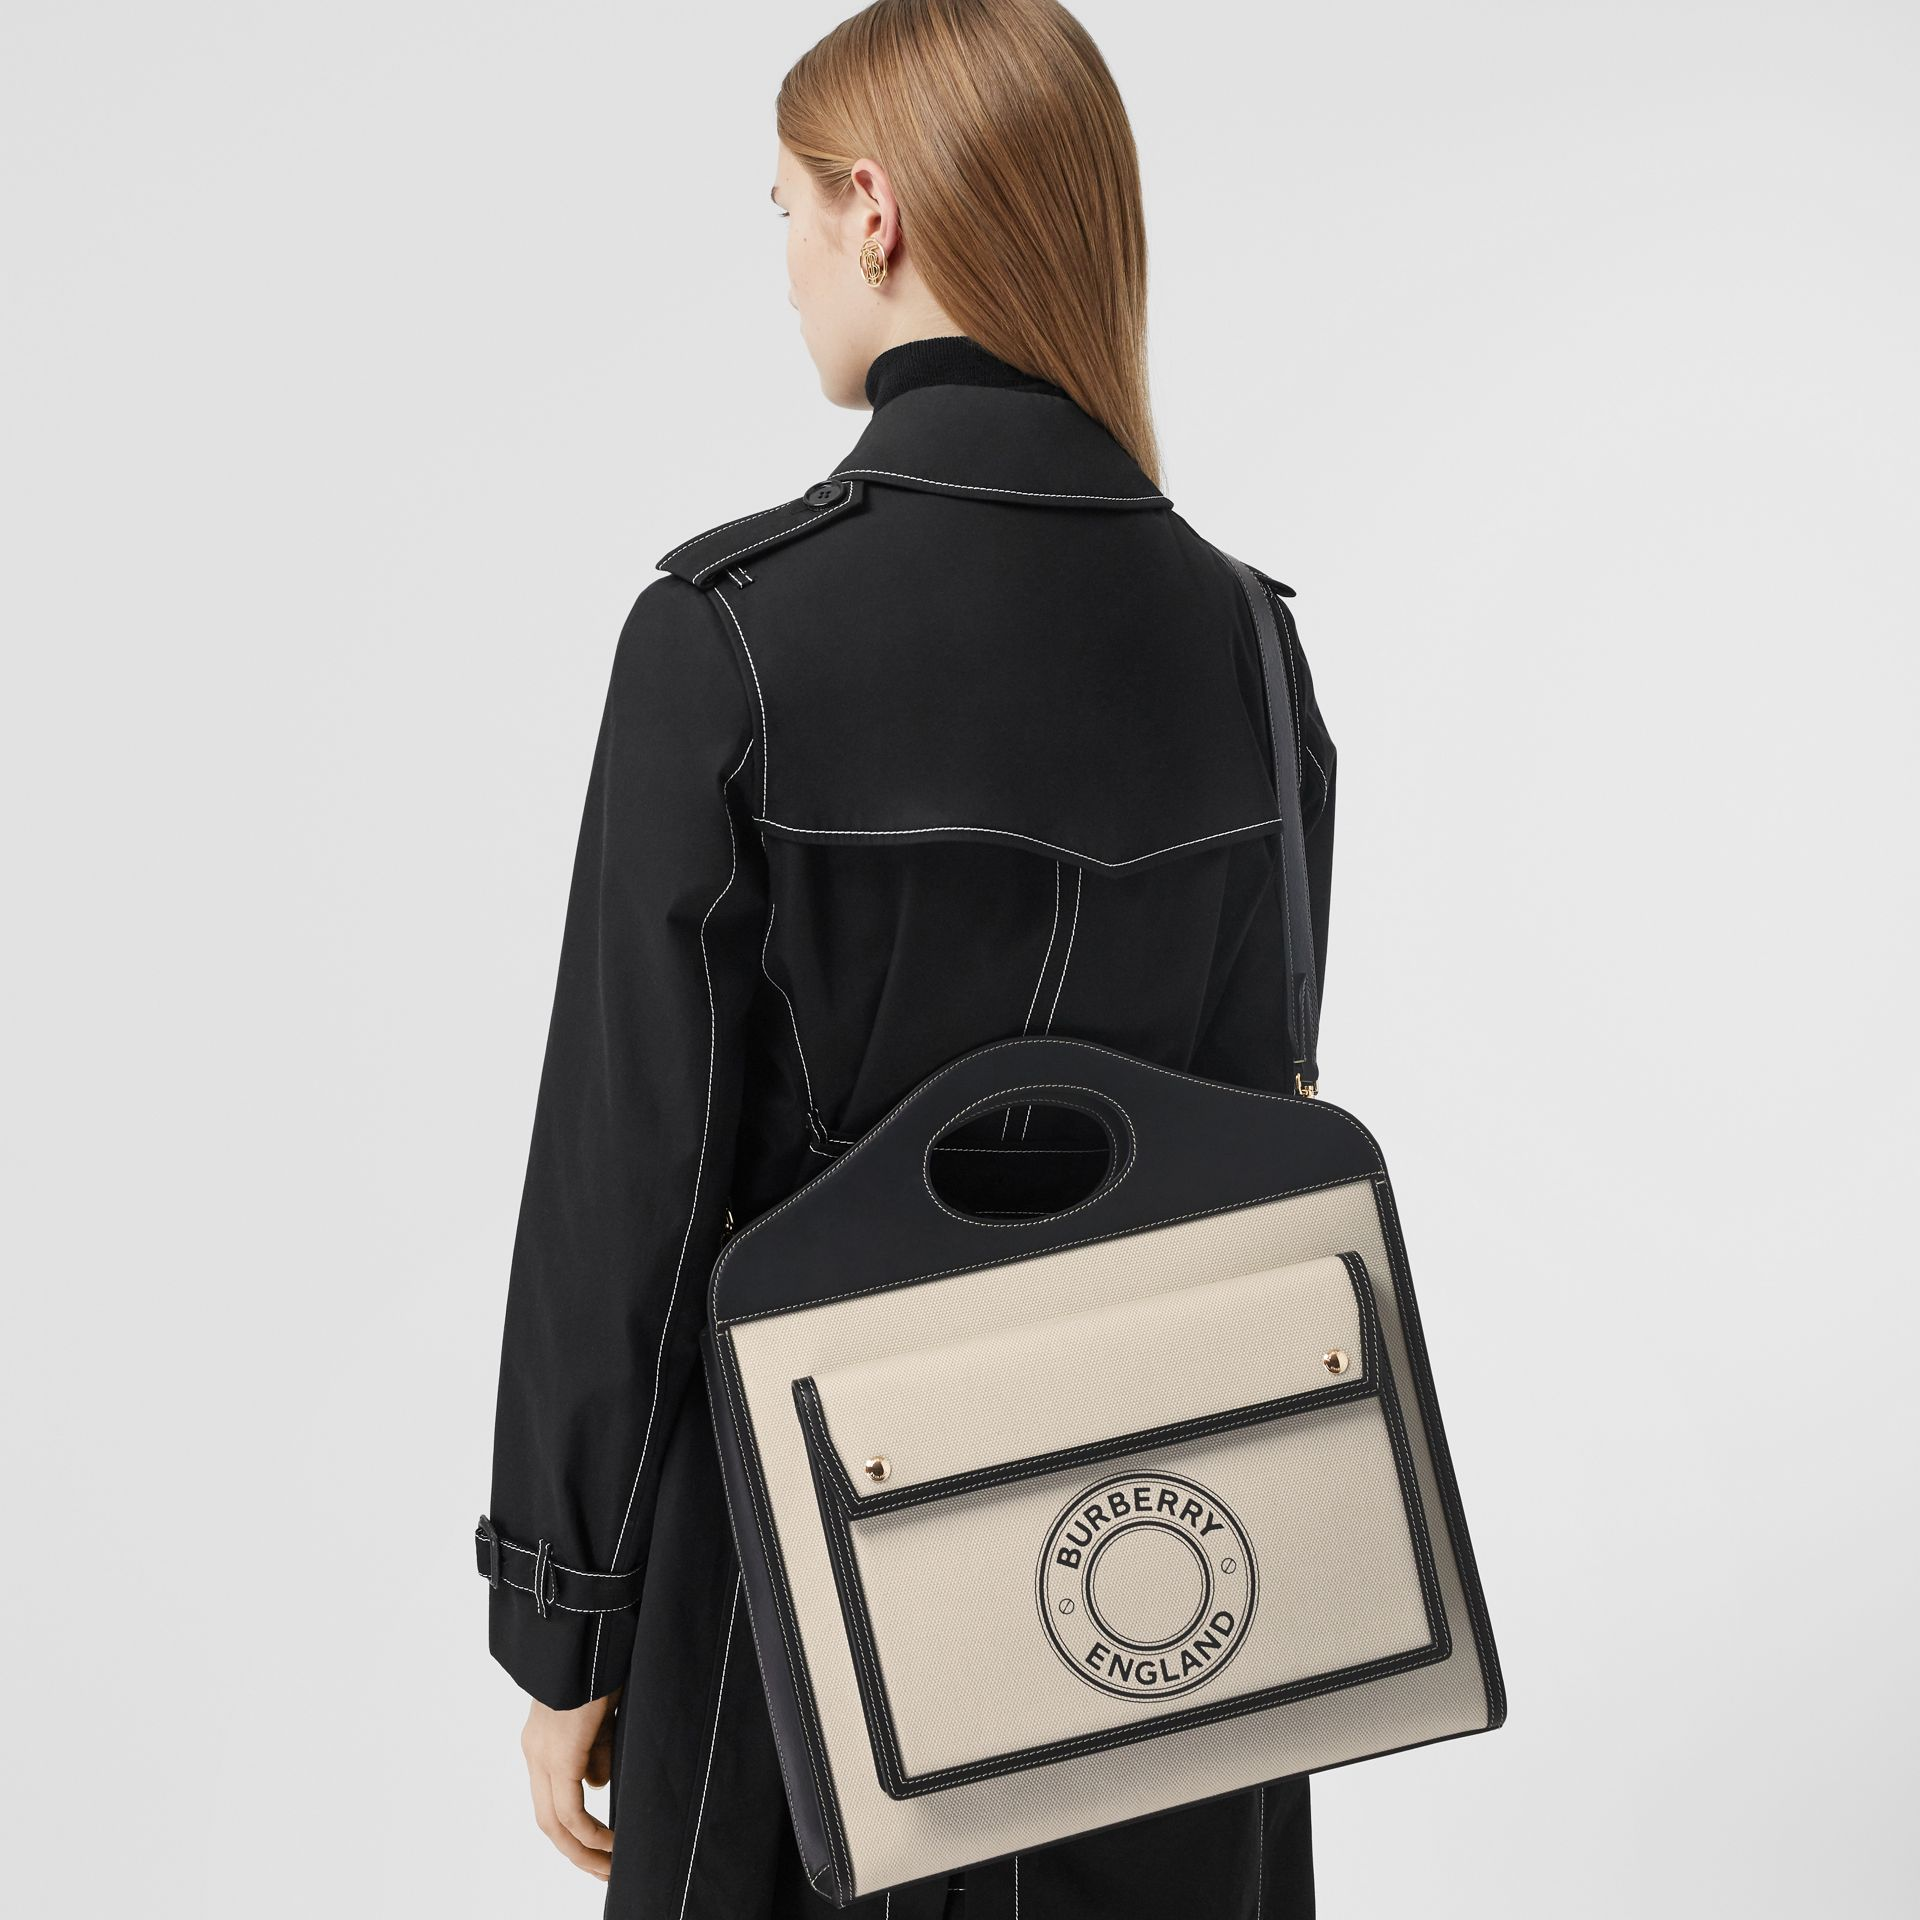 Medium Logo Graphic Canvas and Leather Pocket Bag in Black/white - Women | Burberry - gallery image 8